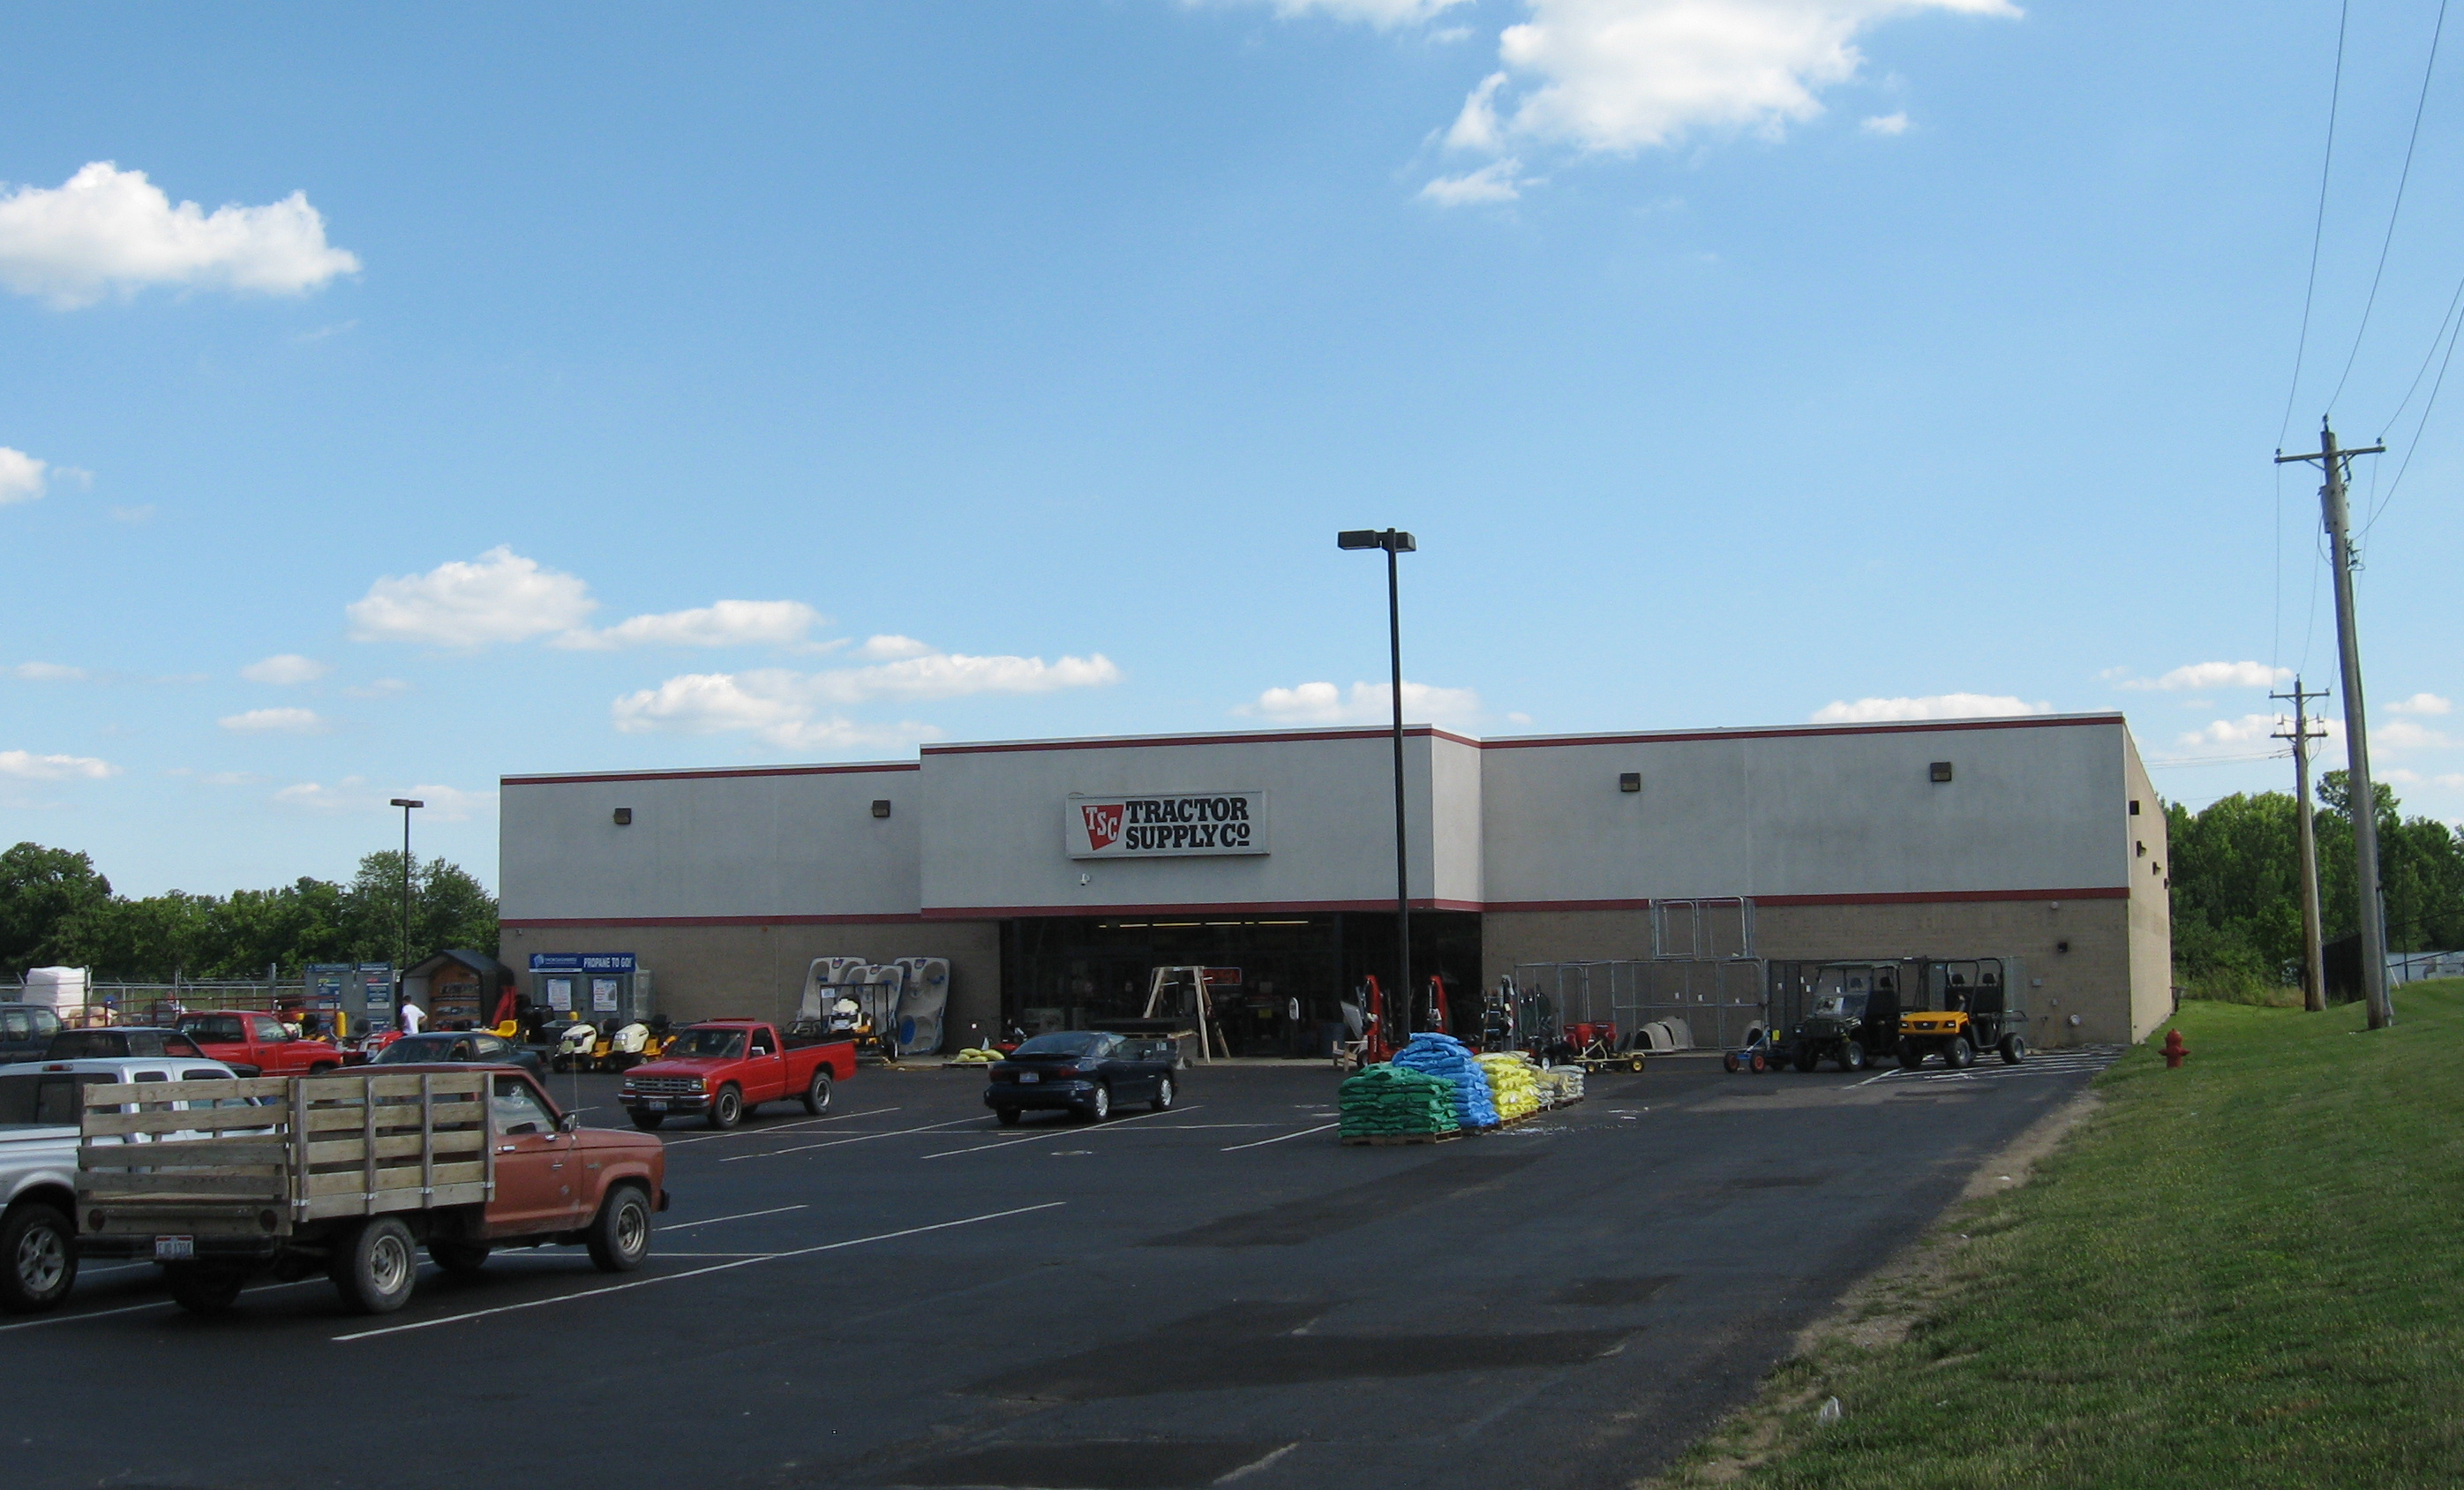 Springboro (OH) United States  city pictures gallery : Tractor Supply Co. location in Springboro, Ohio .